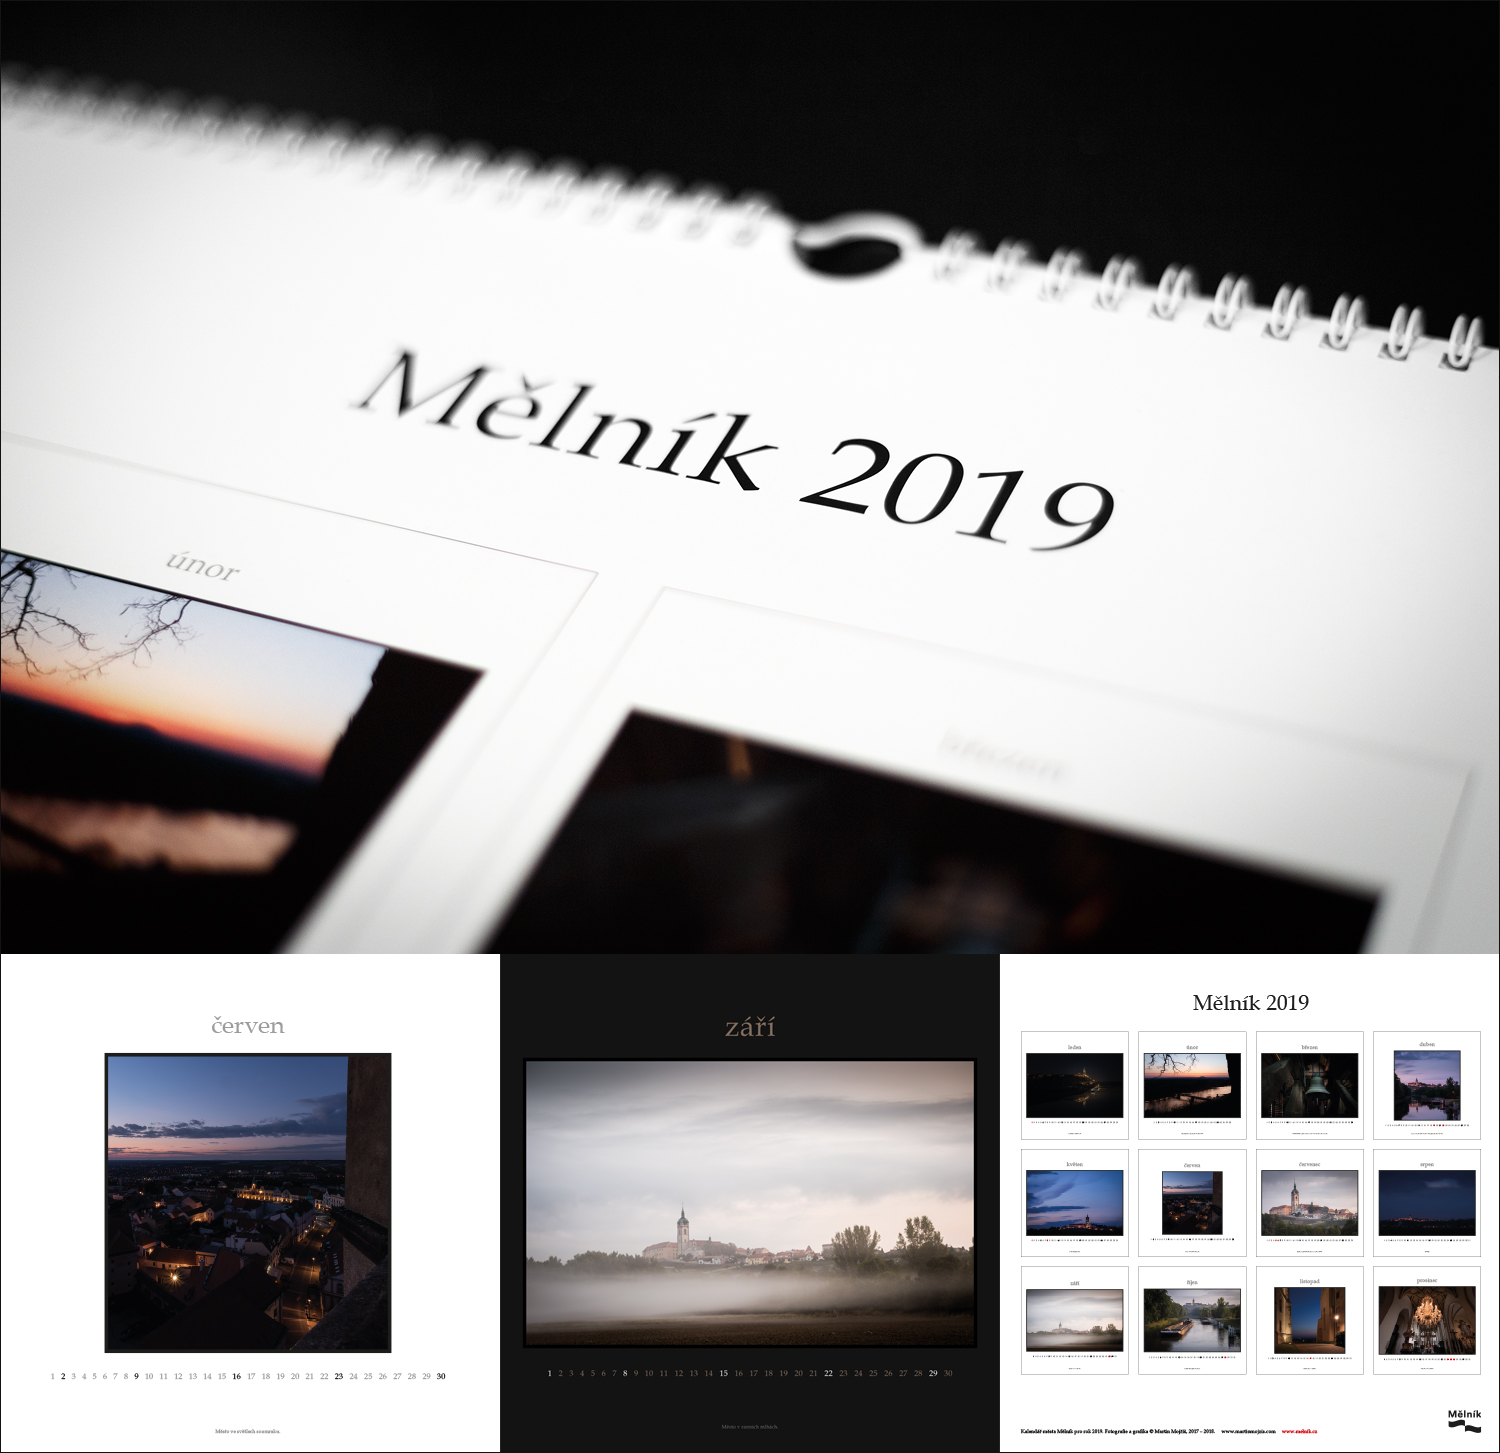 Auctorial calendar of Melnik City for 2019 year. Photography and graphic art © Martin Mojzis.